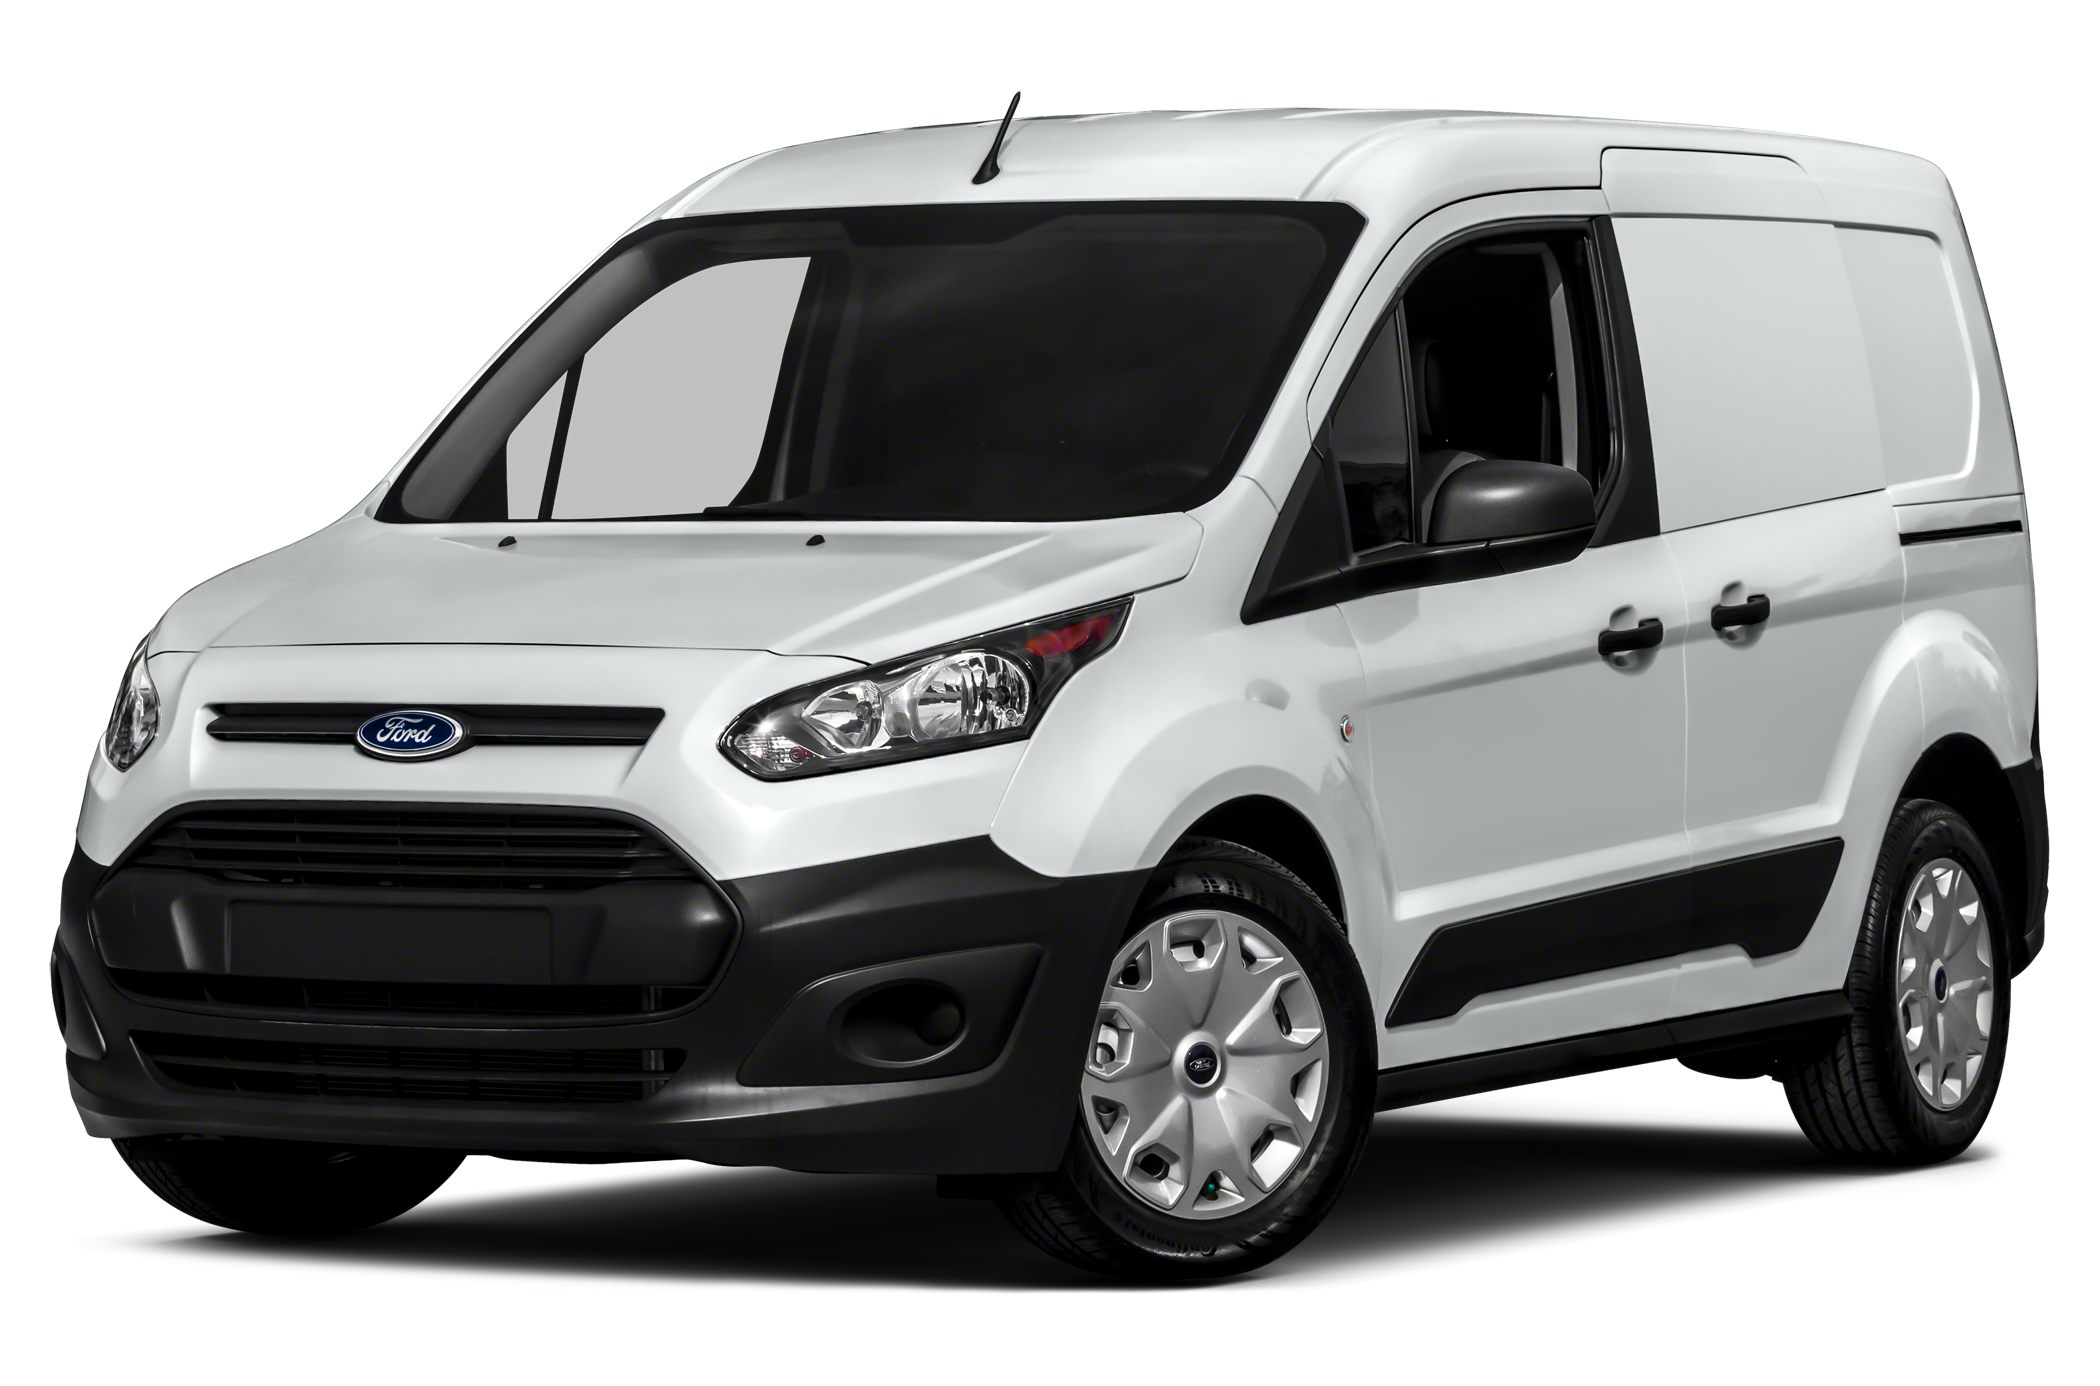 3b900c5fc1 2015 Ford Transit Connect XLT Cargo Van LWB Review - Autoblog